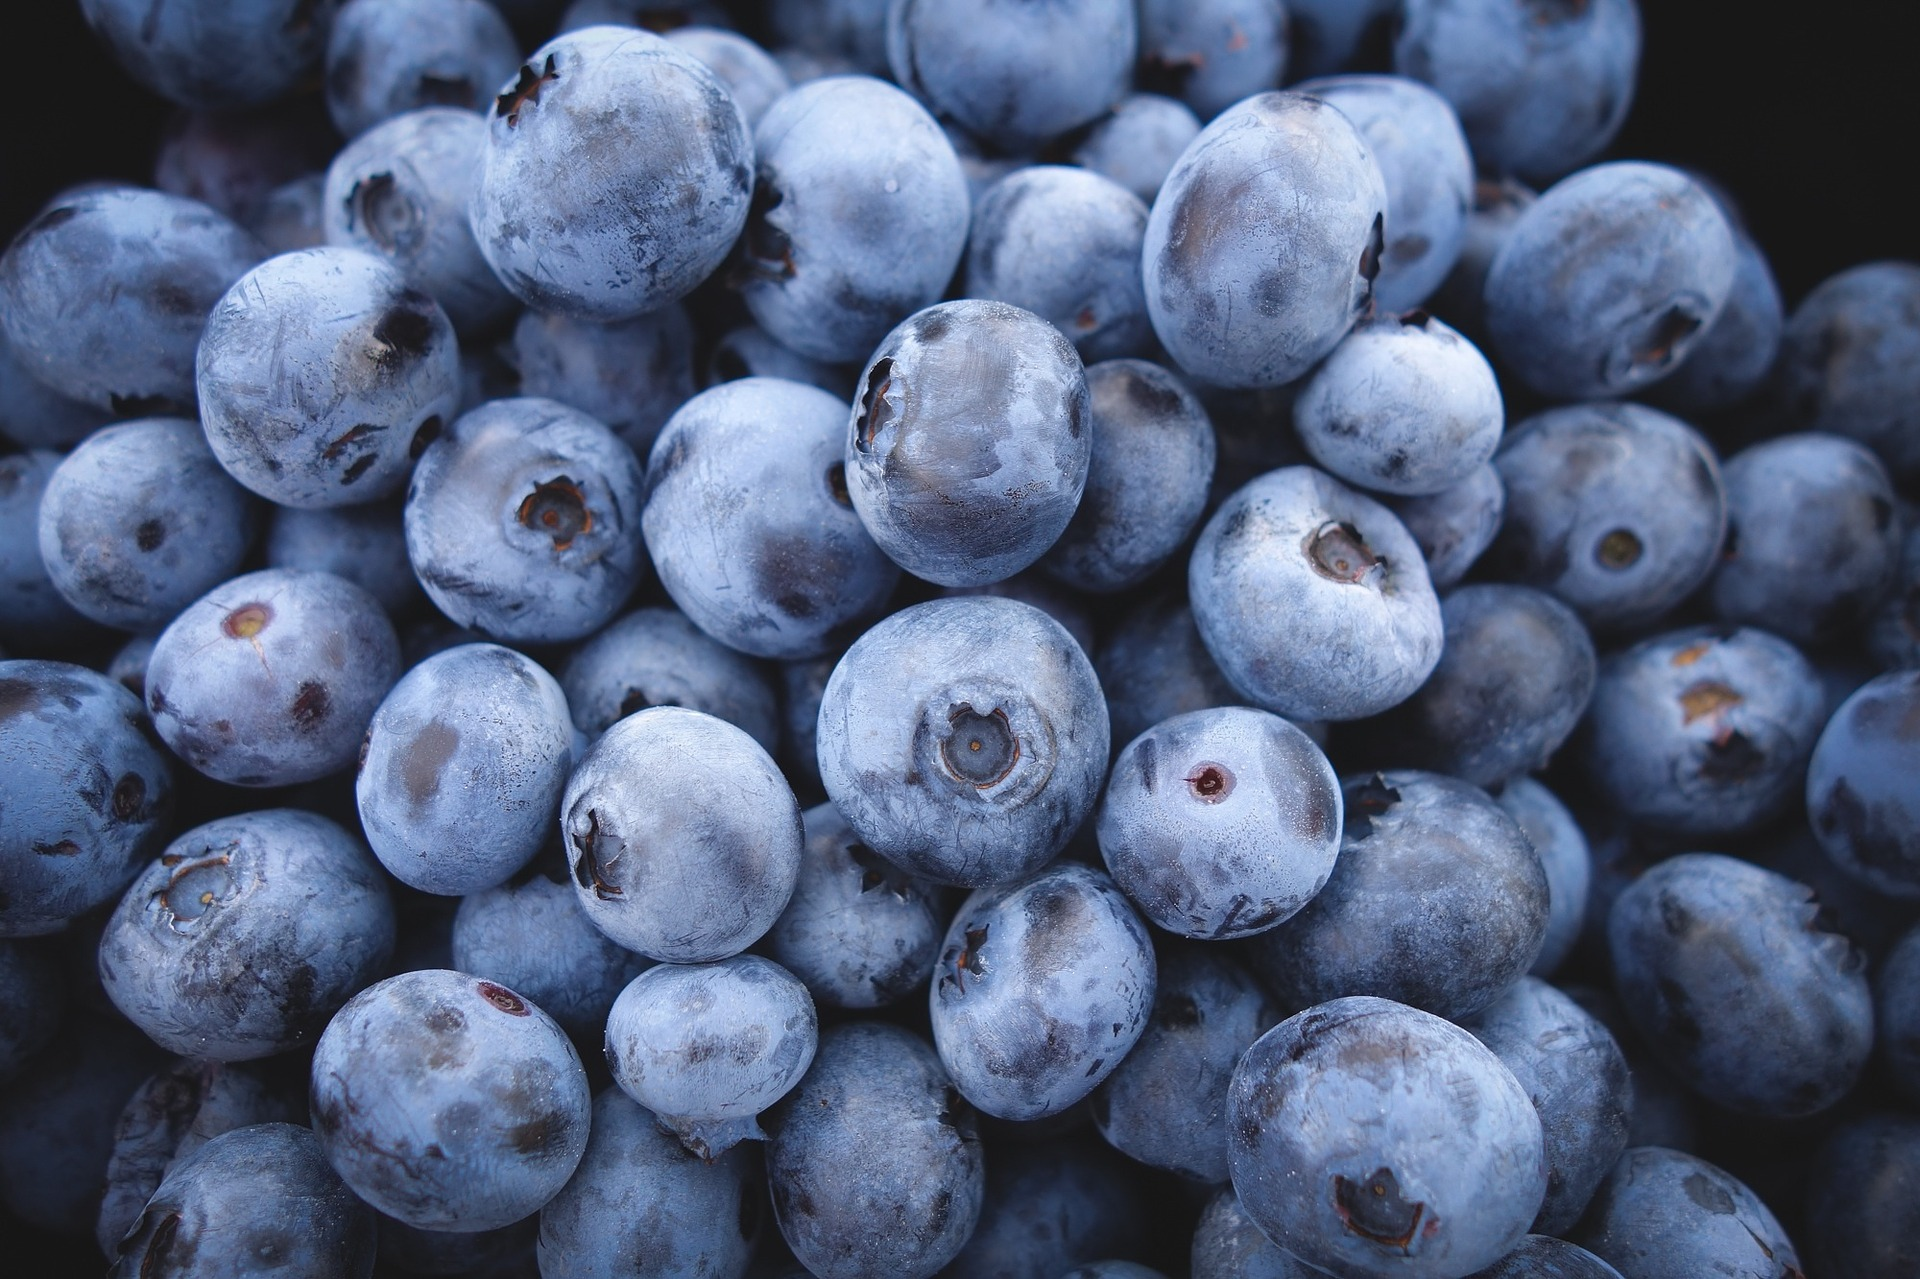 blueberries-690072_1920jpg